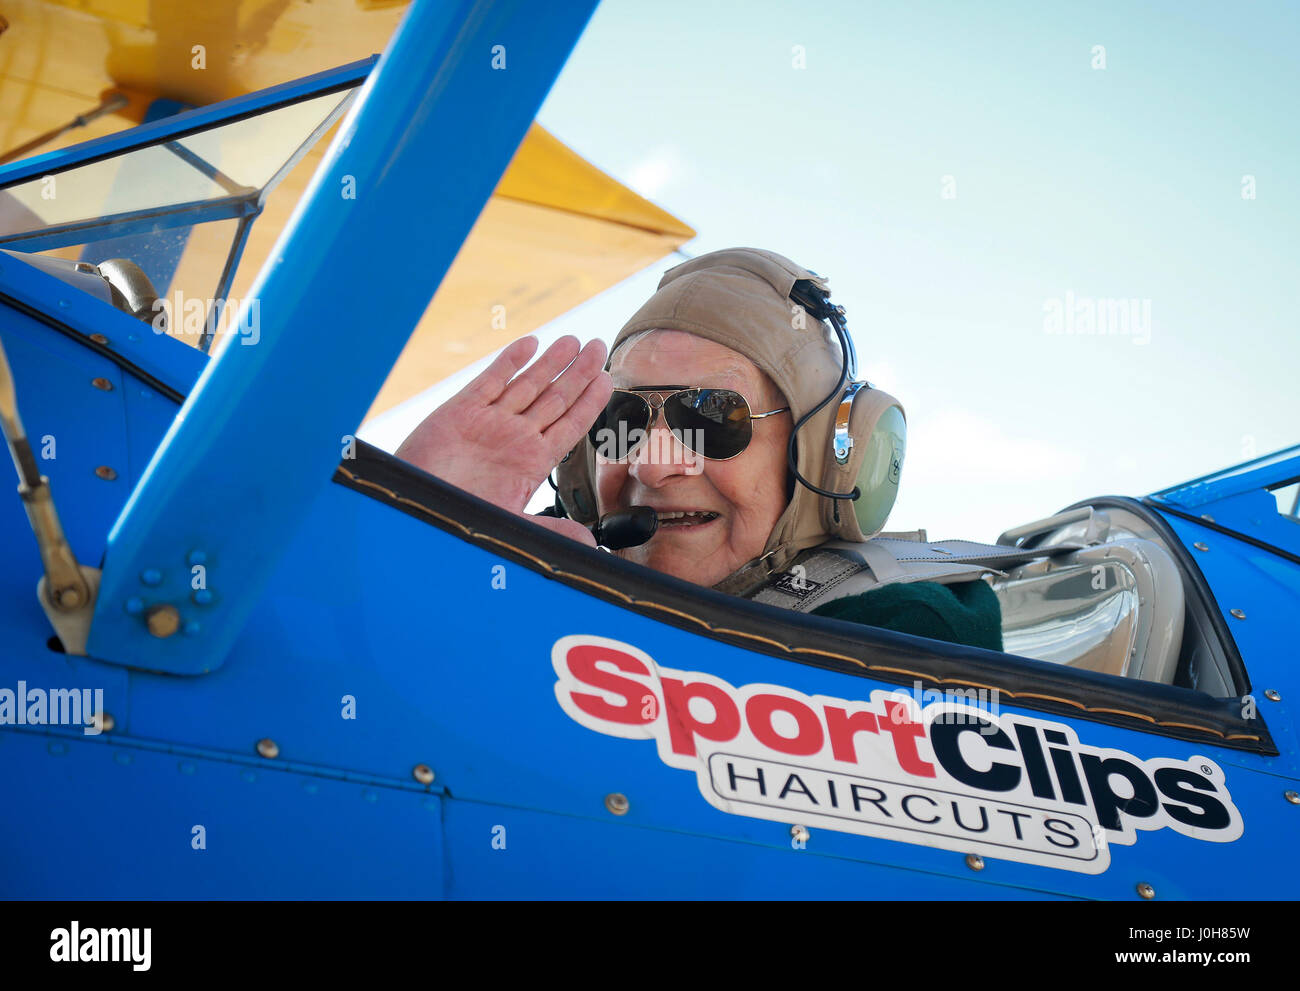 Boca Raton, Florida, USA. 13th Apr, 2017. DUANE WEBSTER, age 95, waves from the open-air cockpit of a WWII-era biplane Stock Photo